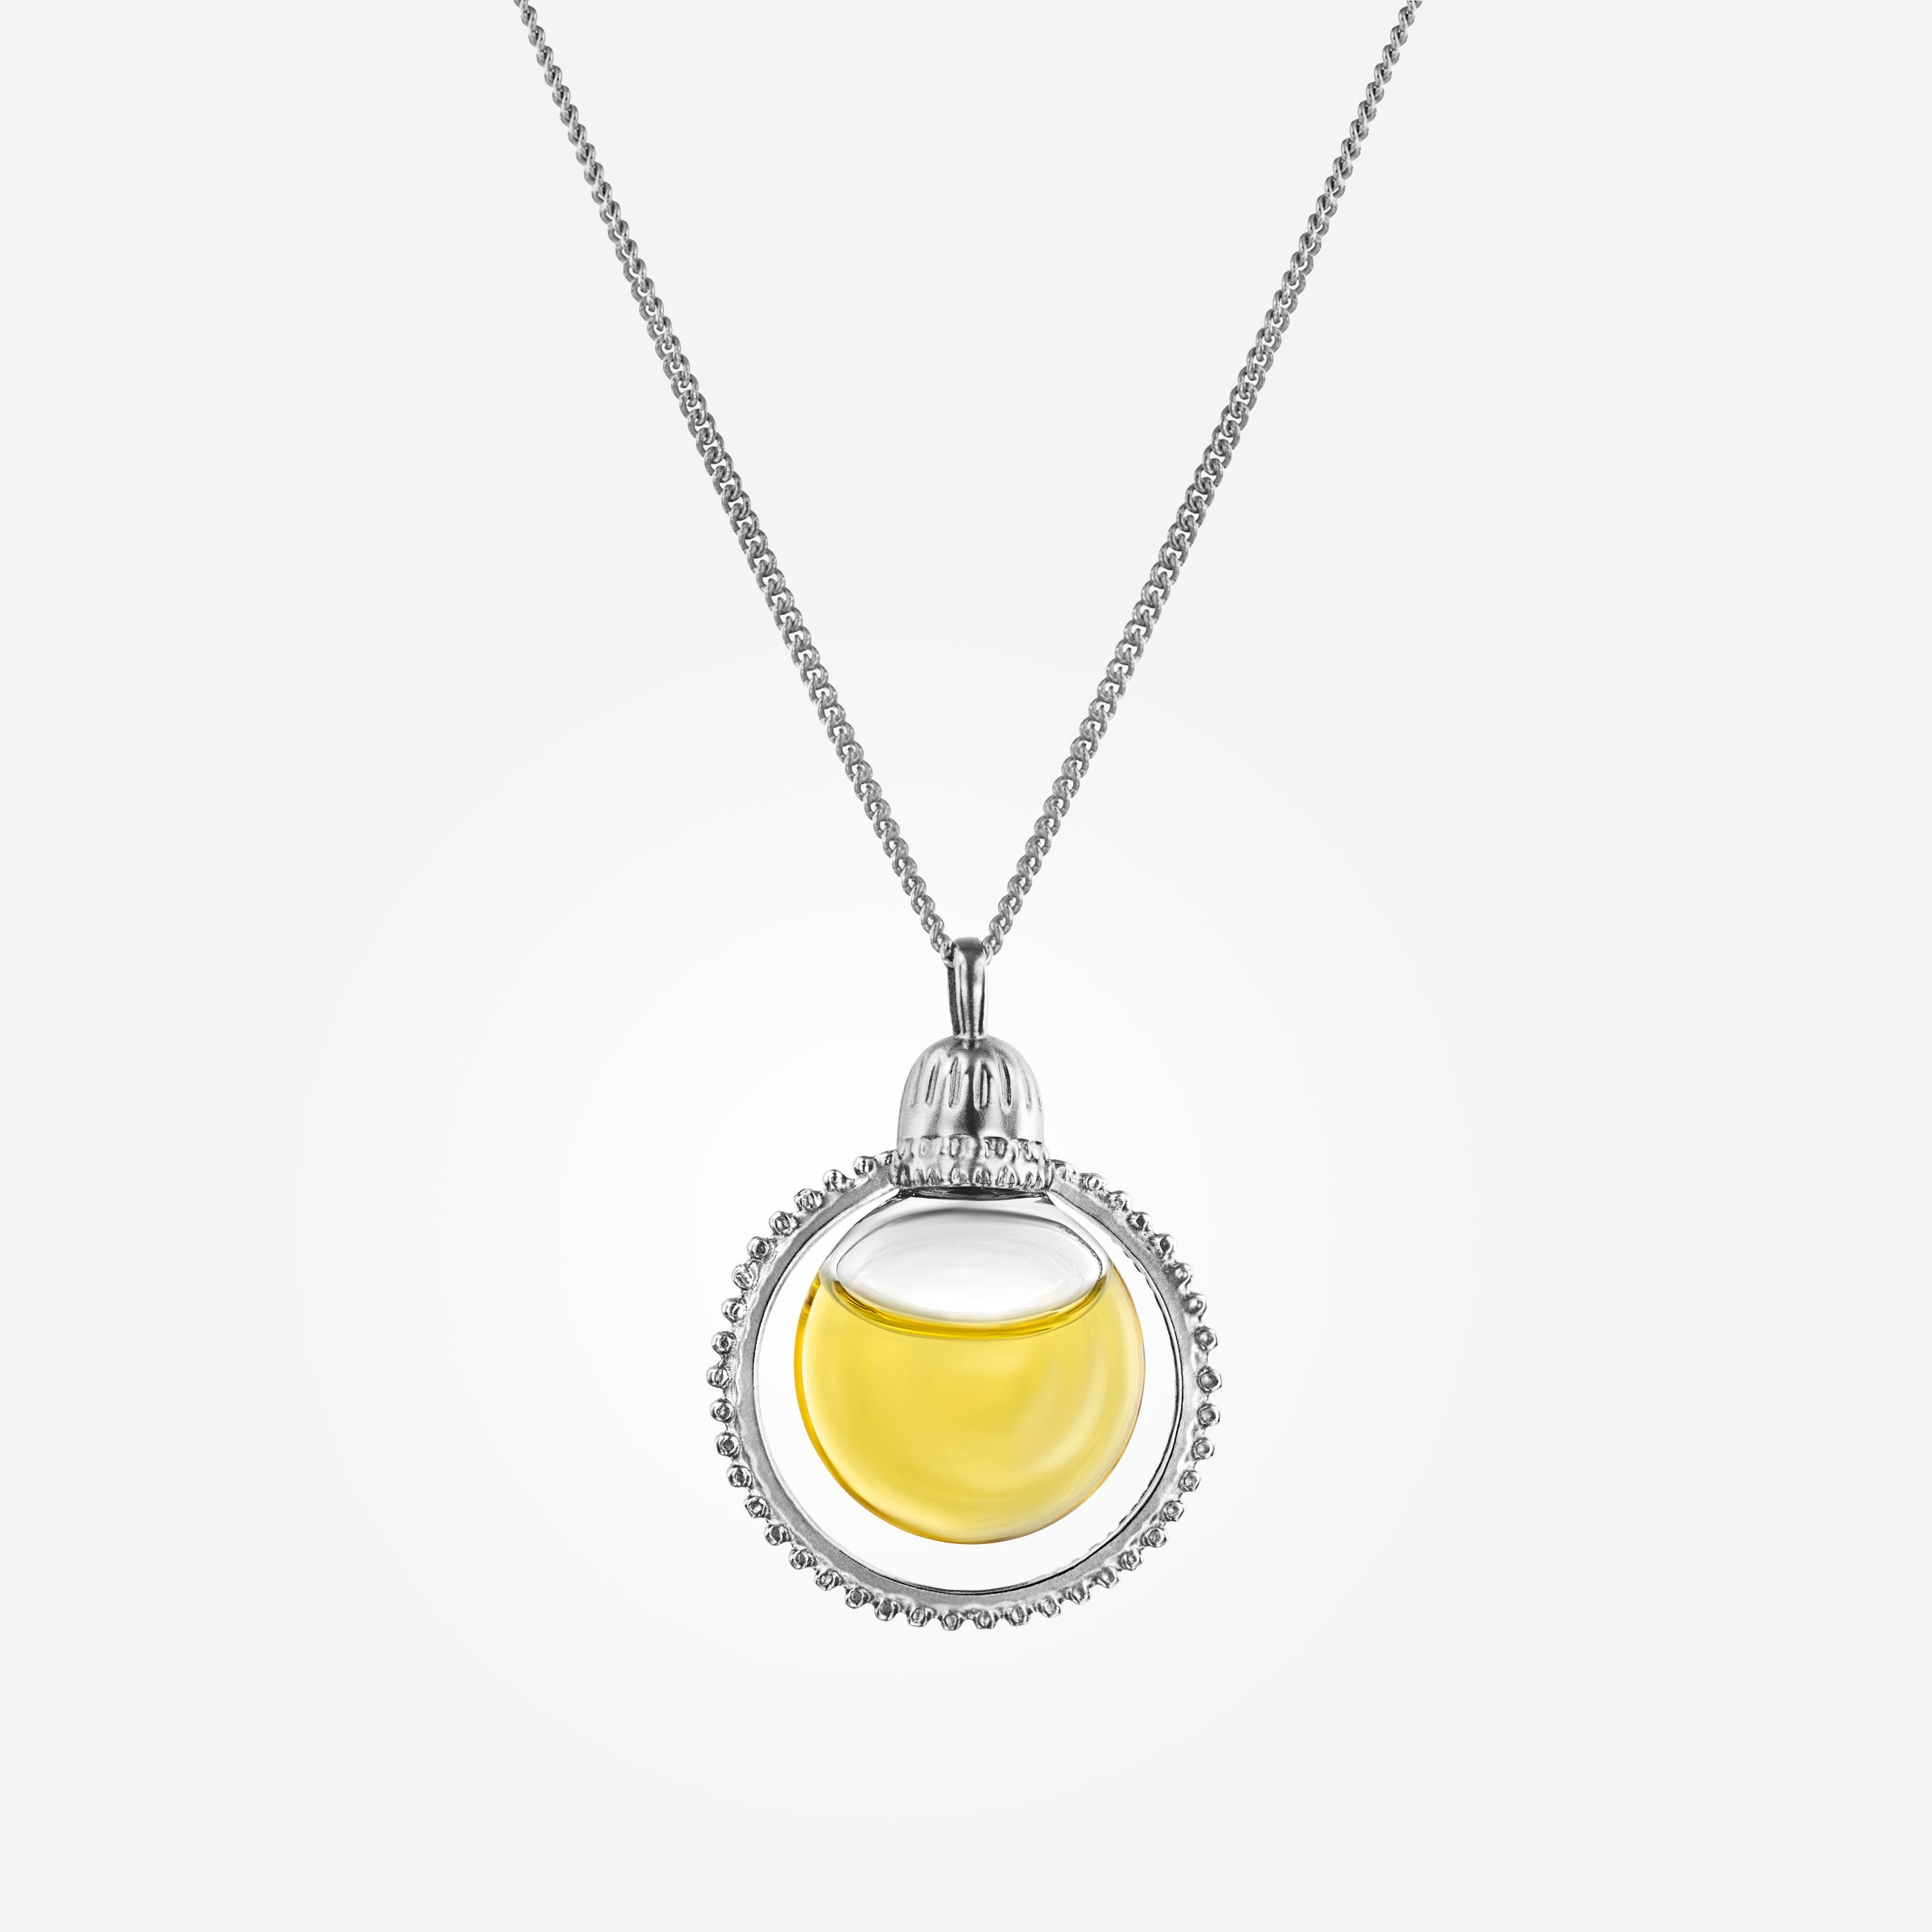 Halo Soil Necklace